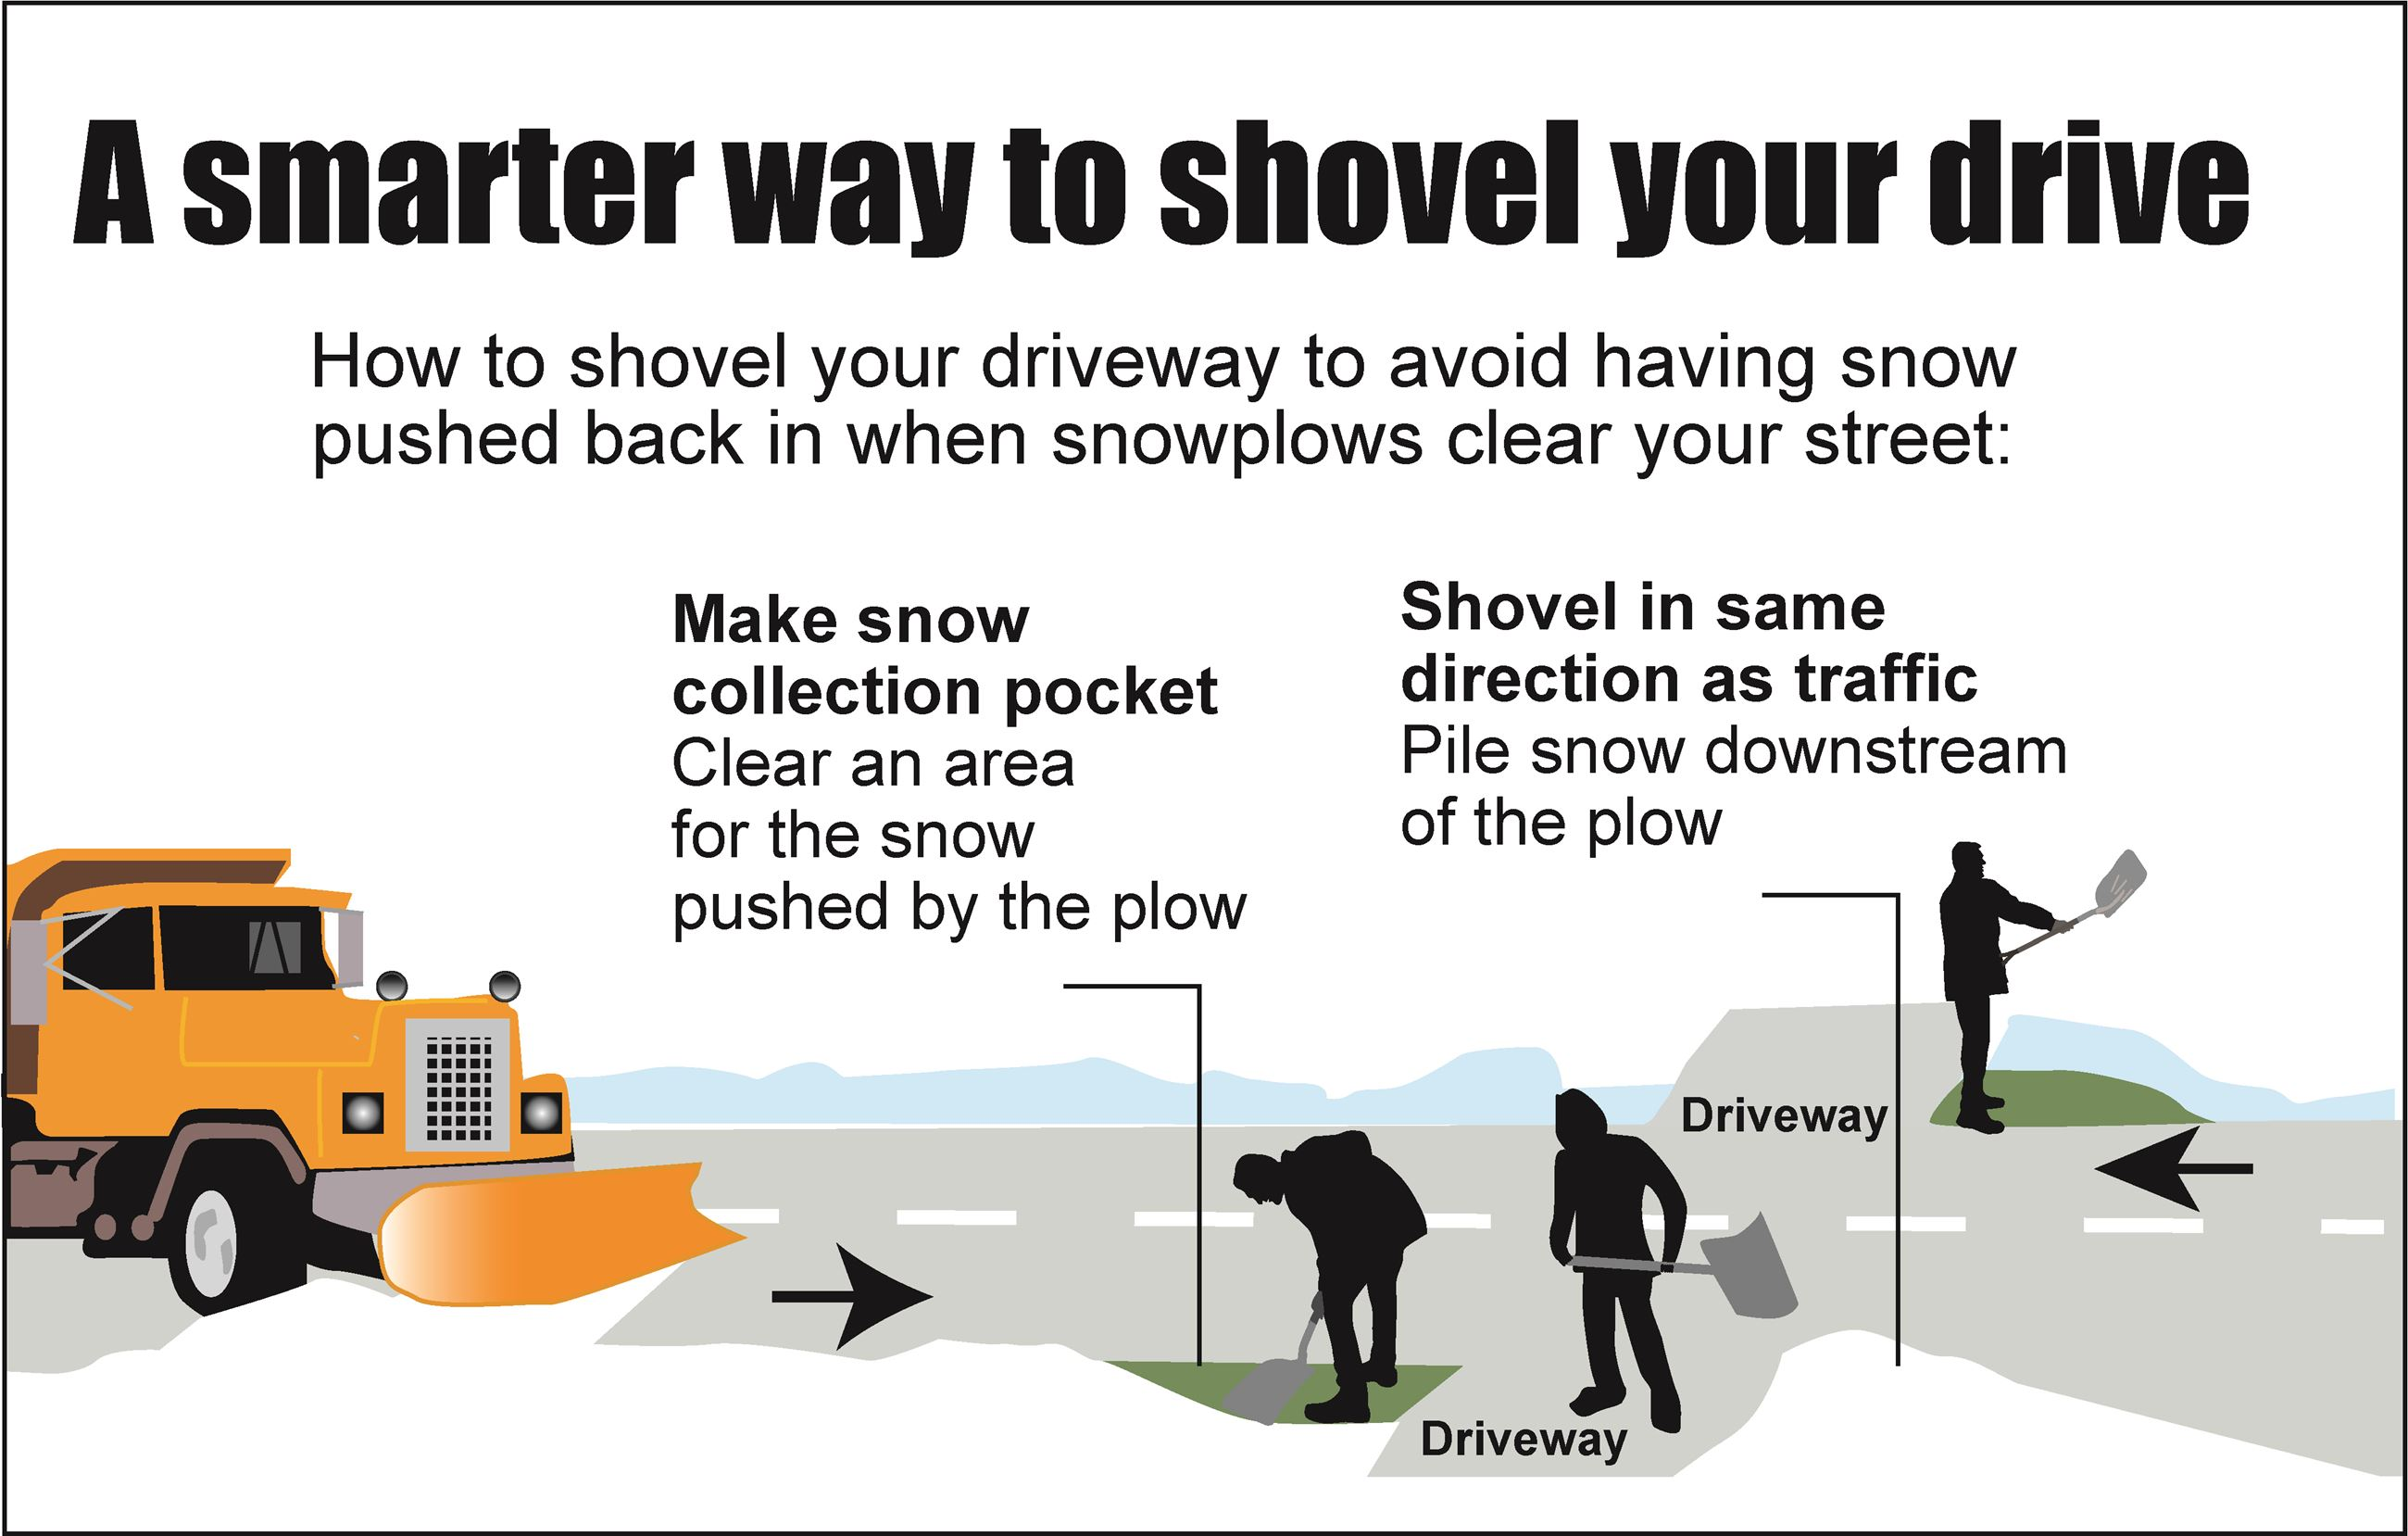 A smart way to shovel your driveway